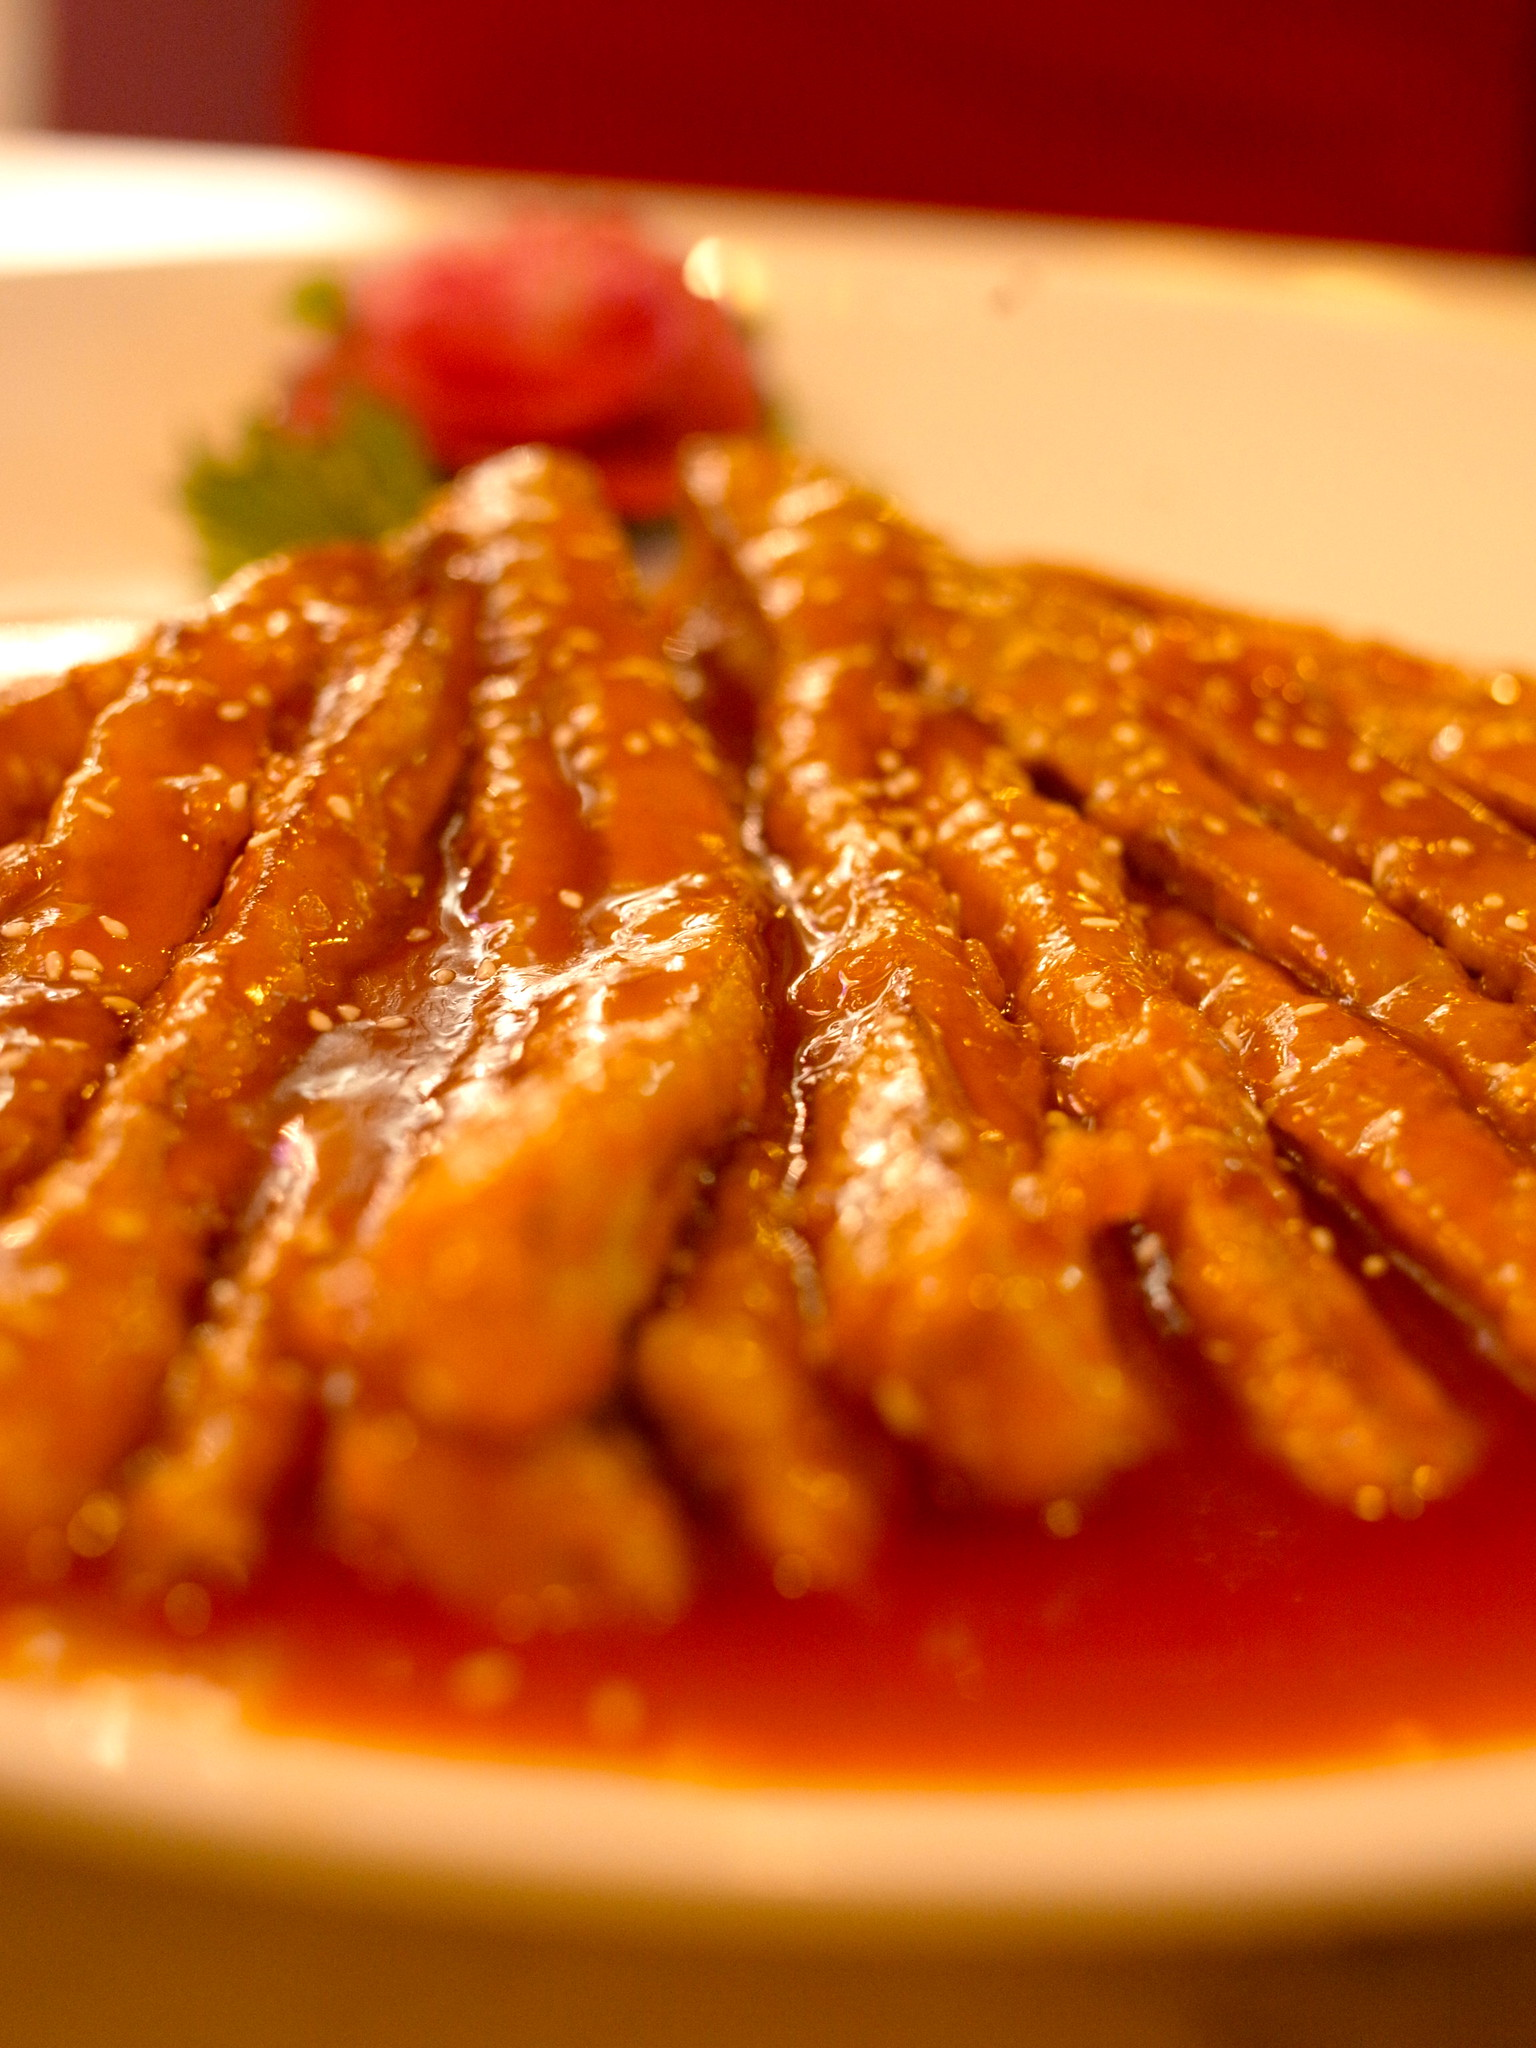 Sweet and sour eggplant strips | Flickr - Photo Sharing!